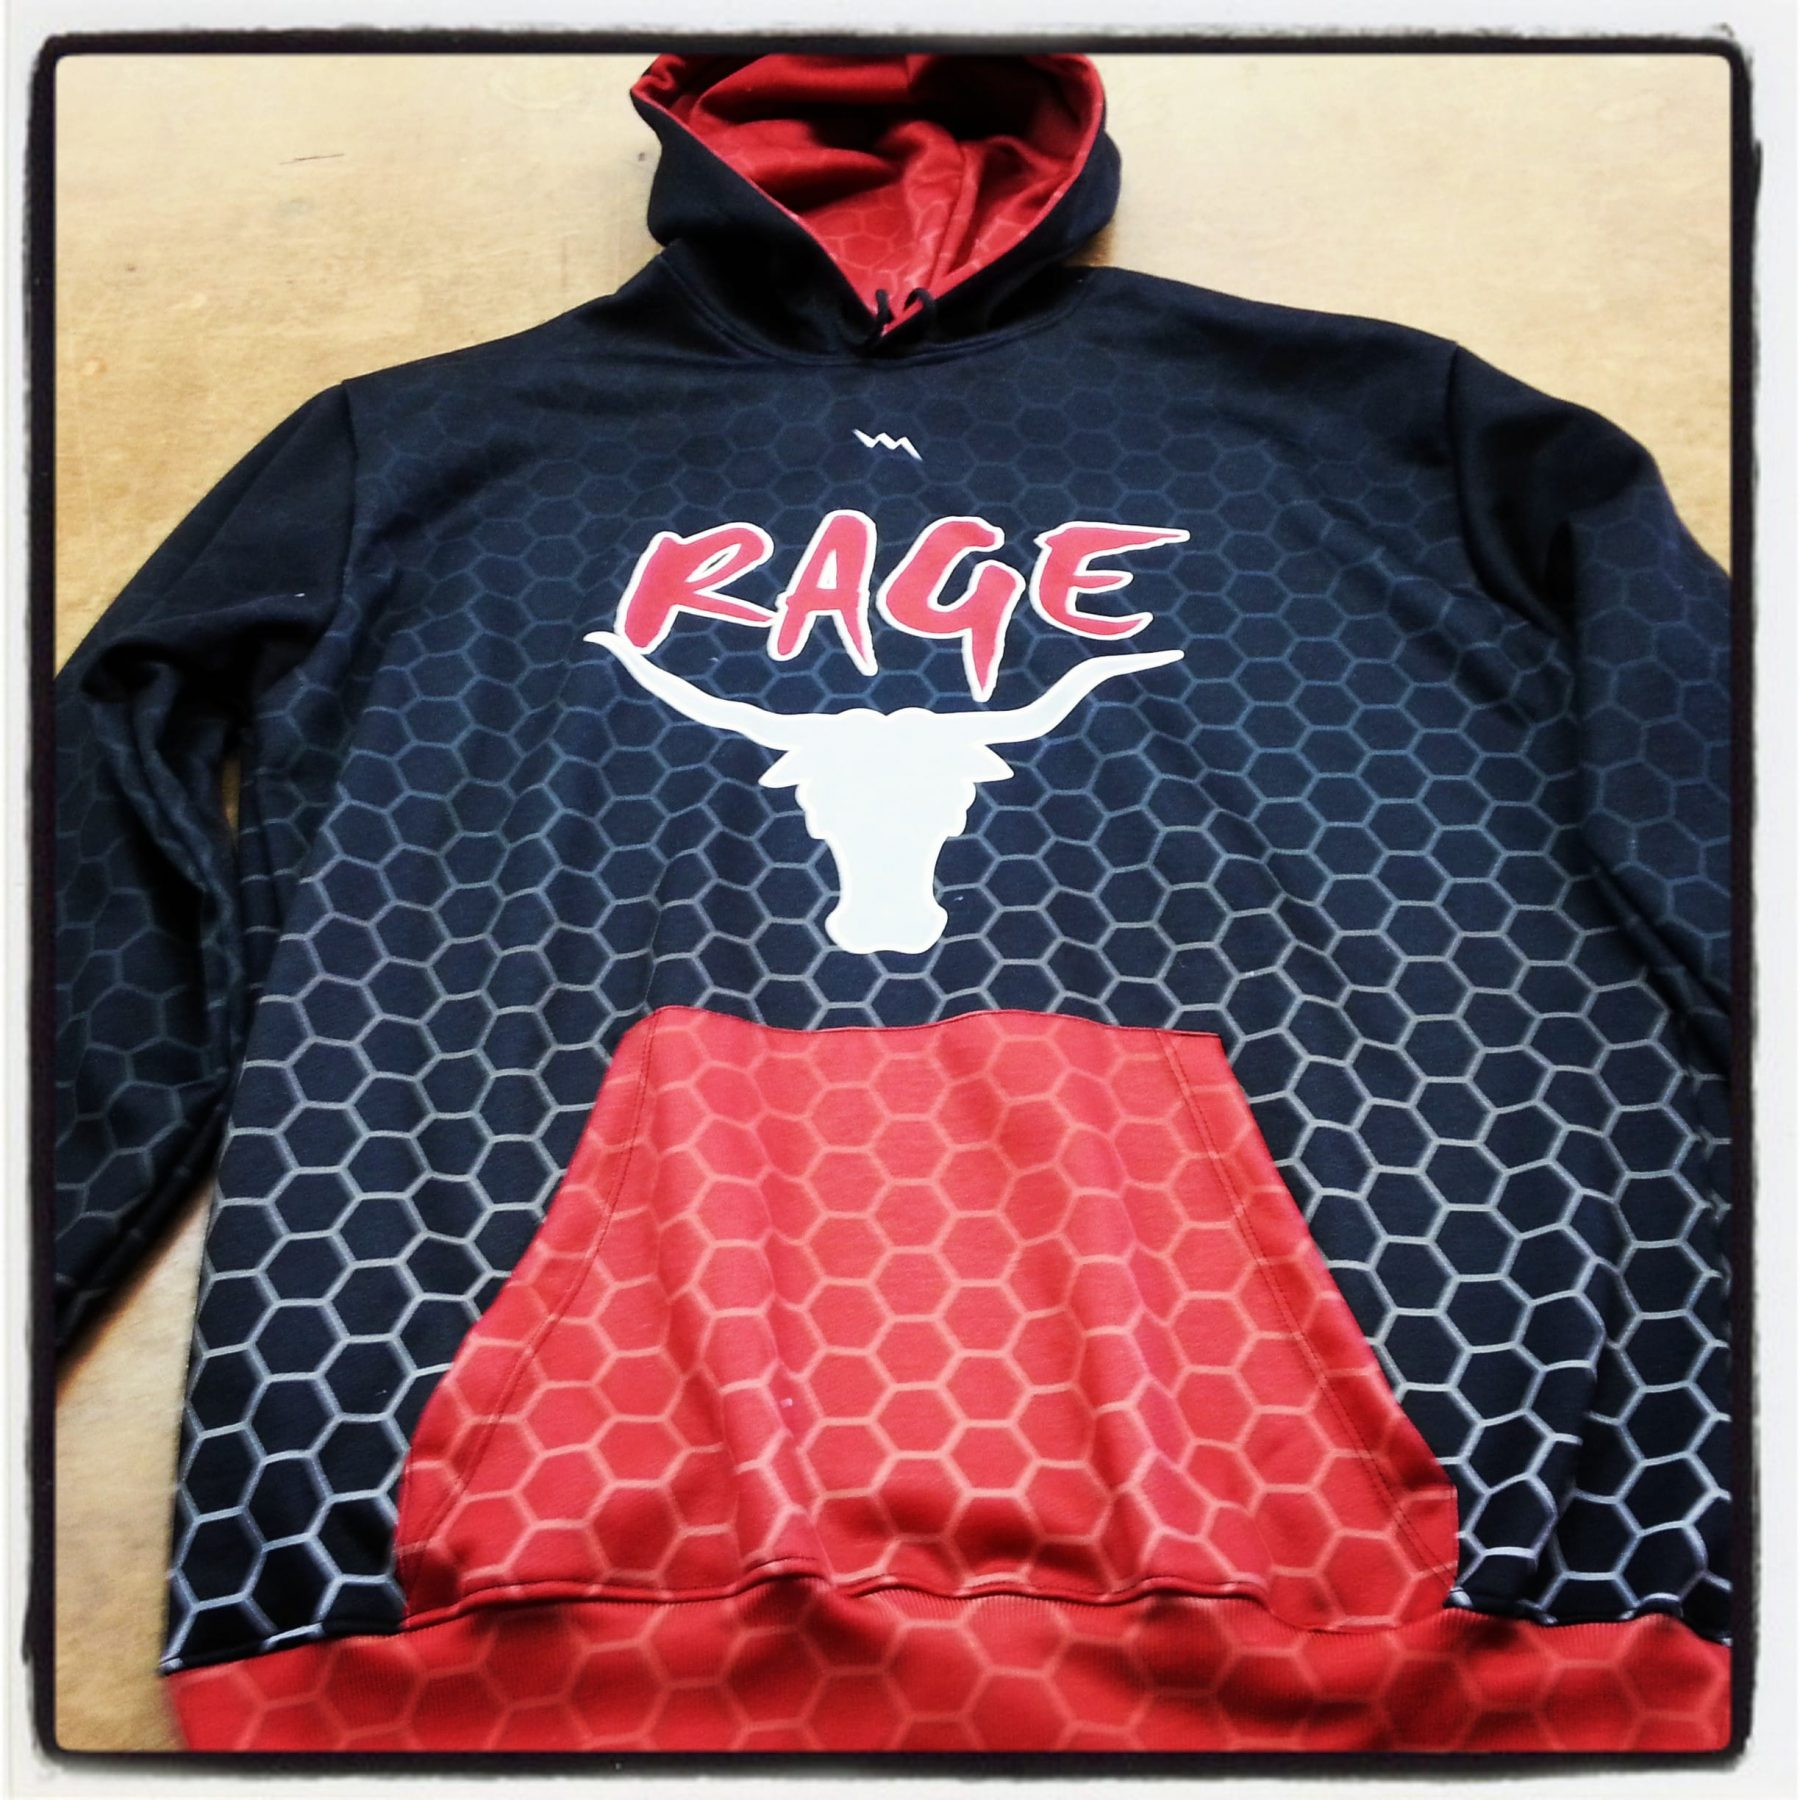 Rage Custom Sweatshirts - Lacrosse Sweats